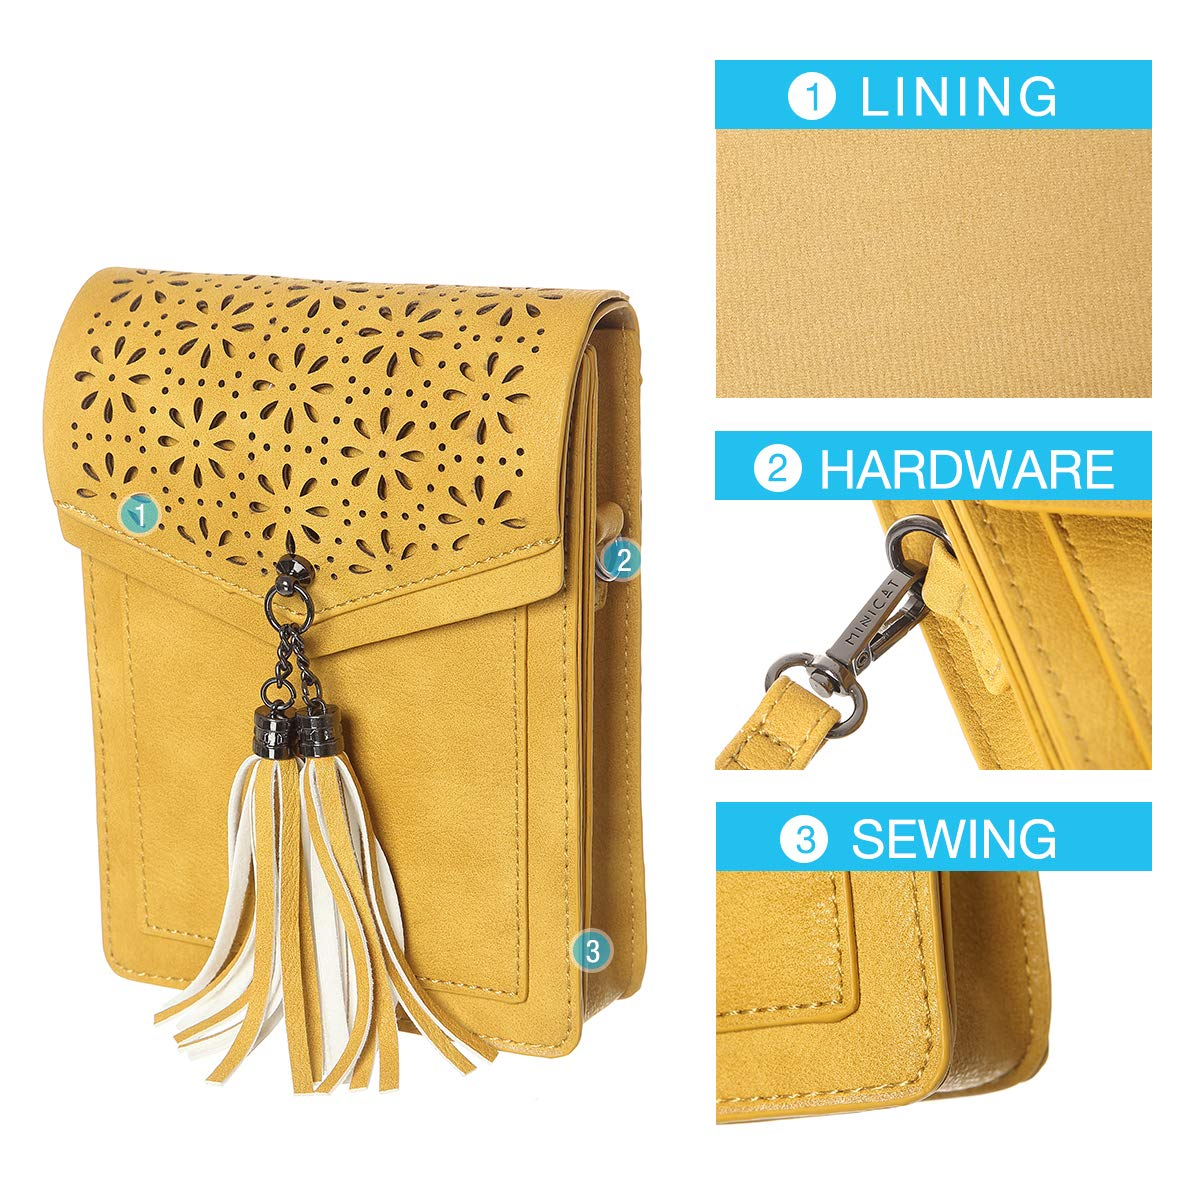 MINICAT Fringe Thicher Pocket Small Crossbody Bags Cell Phone Purse Wallet For Women With Credit Card Slots(Yellow) by MINICAT (Image #4)